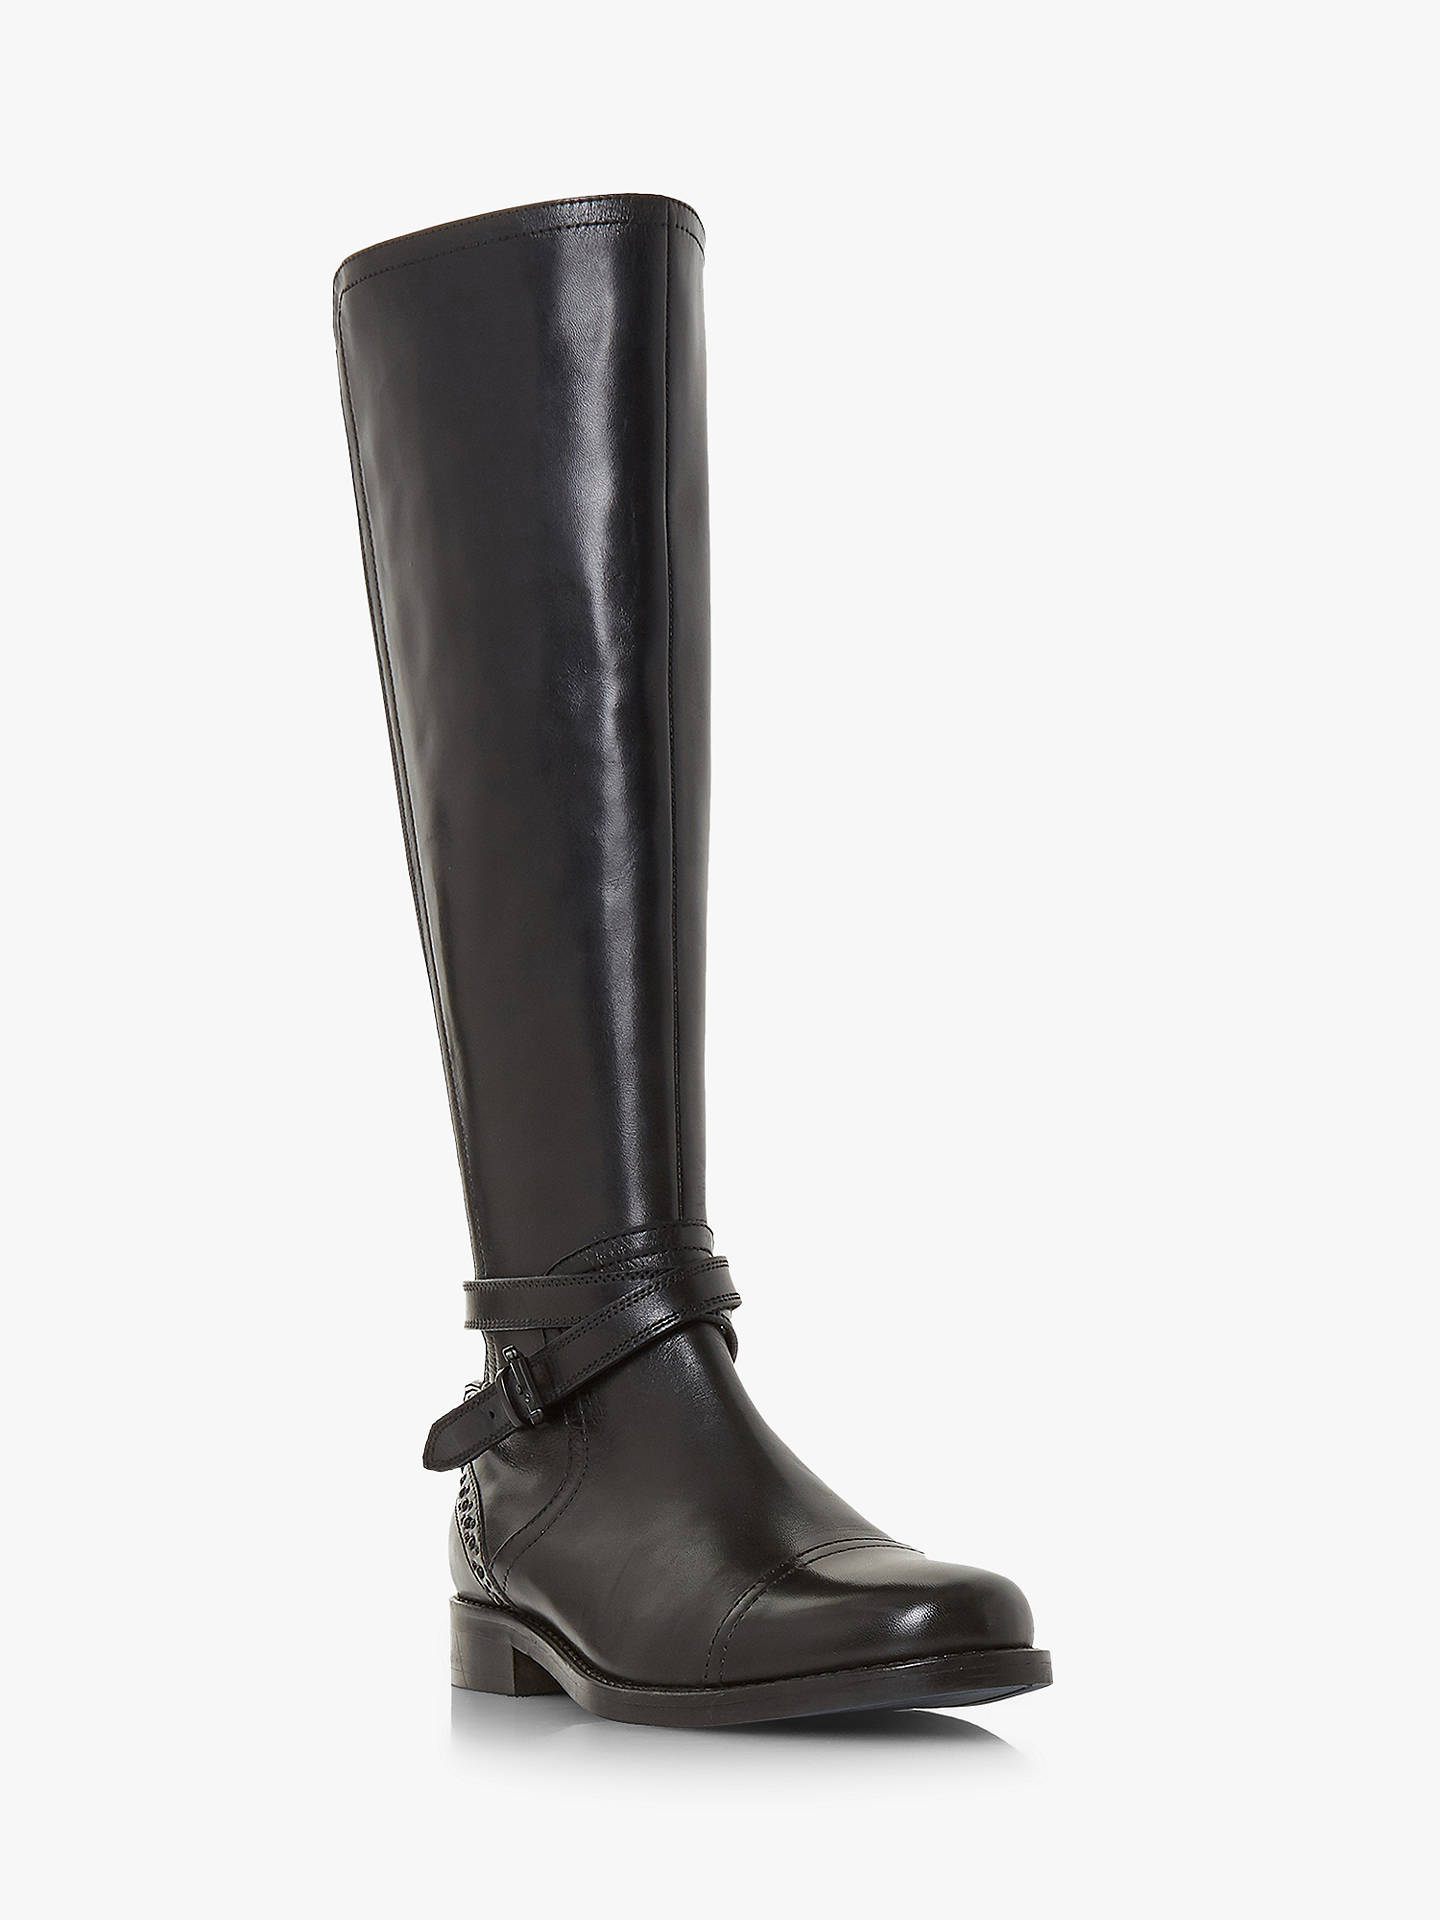 BuyBertie Taykoda Knee High Boots, Black Leather, 3 Online at johnlewis.com